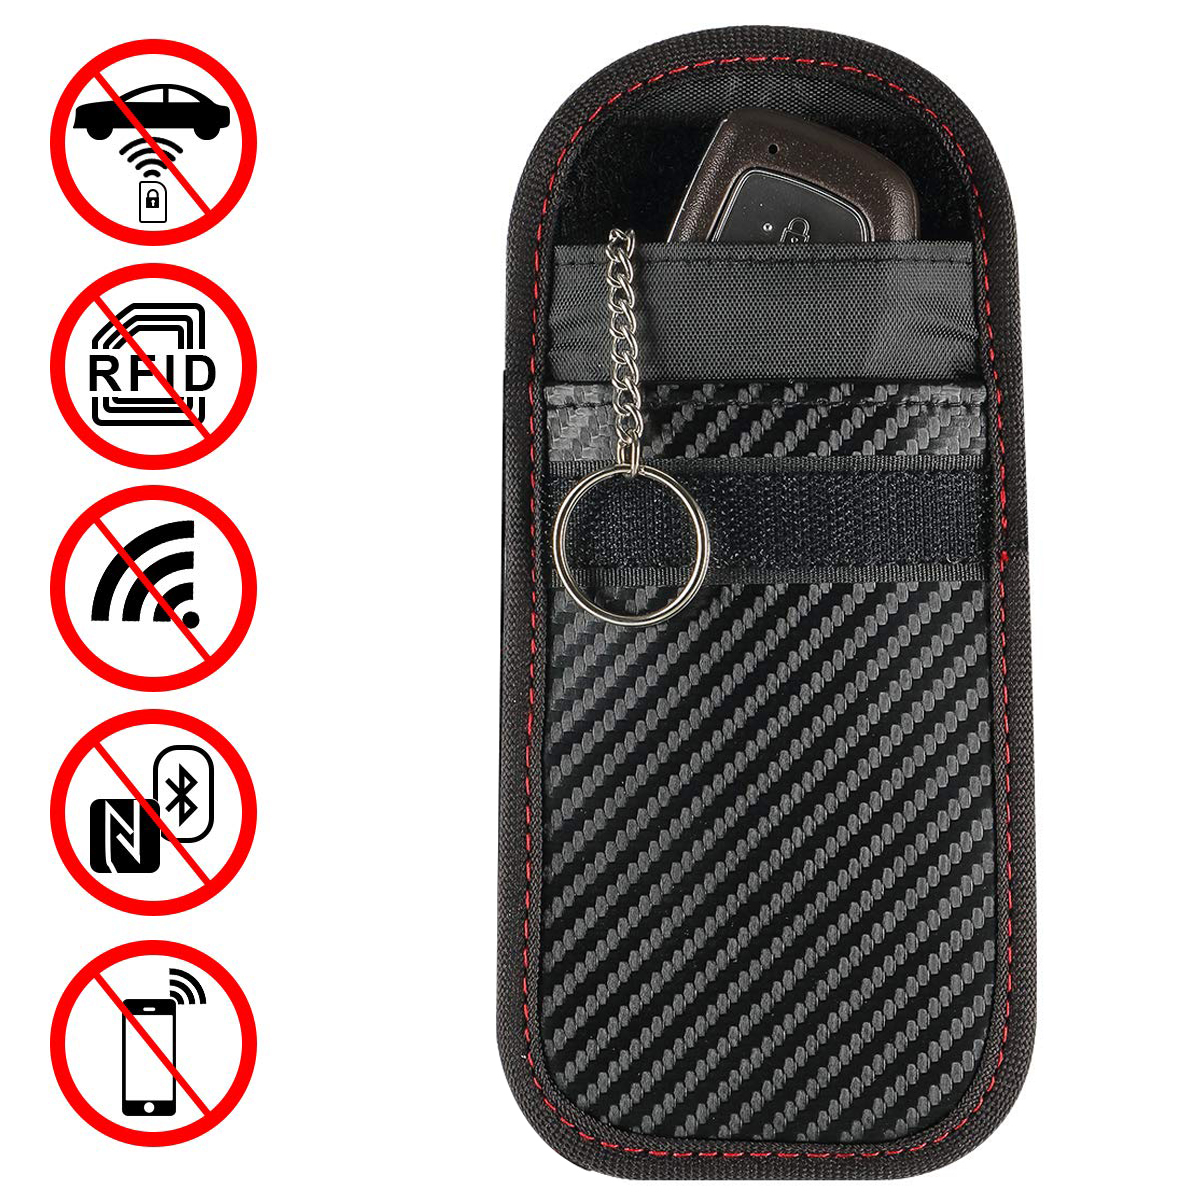 1pc/2pcs Portable Signal Blocker Car Key Case Faraday Cage Keyless Entry Fob Pouch RFID Blocking Bag With Key Chain Ring